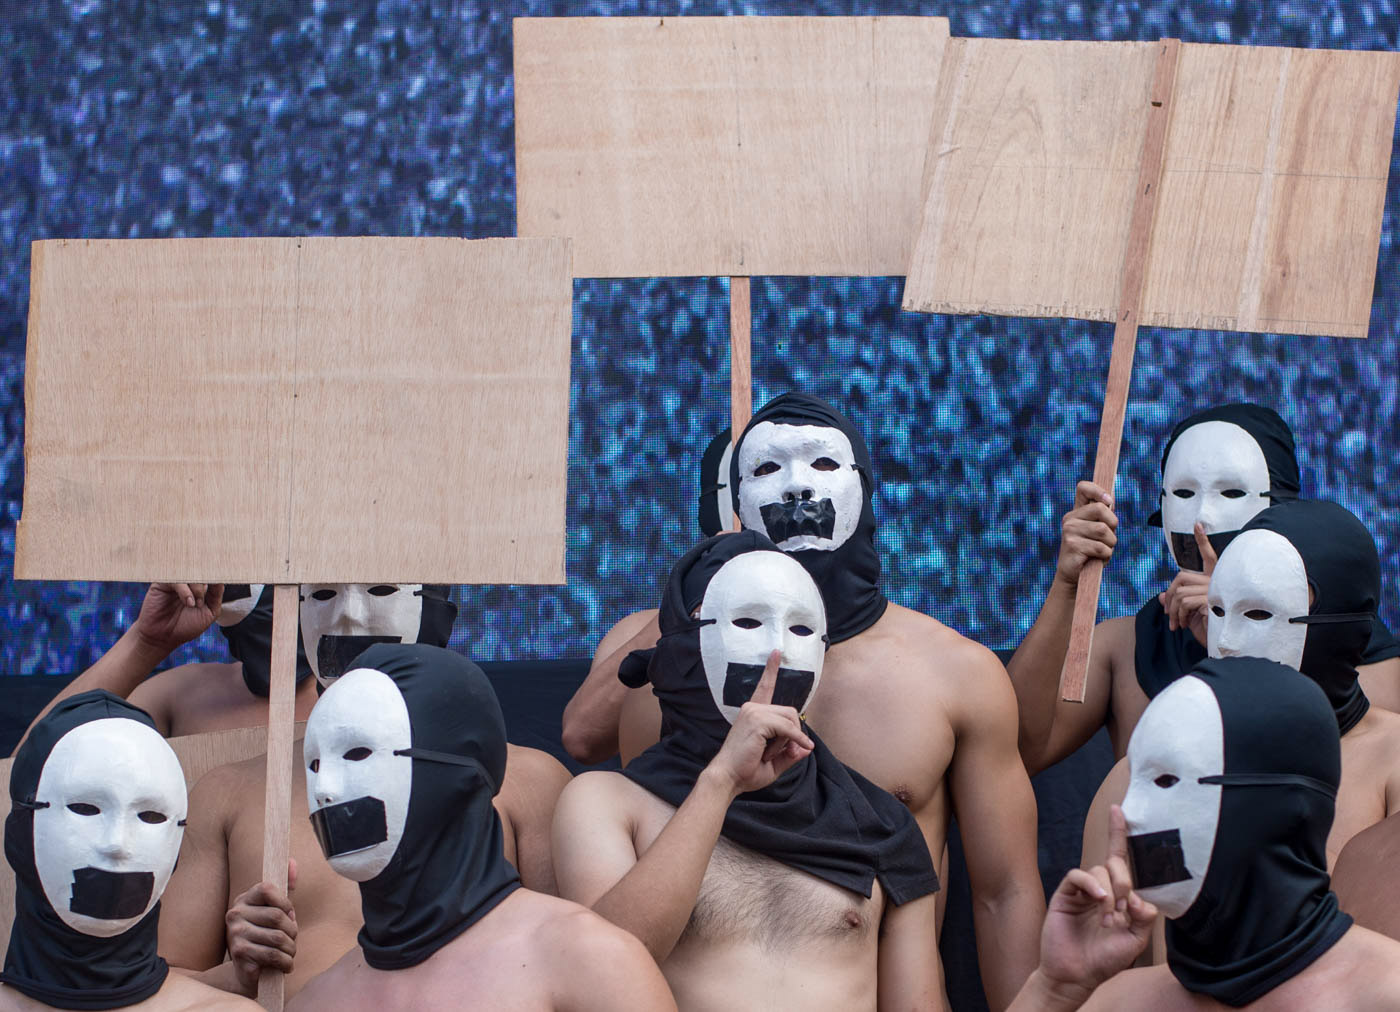 BLANK. Alpha Phi Omega (APO) fraternity members carry blank placards to allow people to voice out their own messages during the Oblation Run at the University of the Philippines-Diliman on February 8, 2019. Photo by Lisa David/Rappler